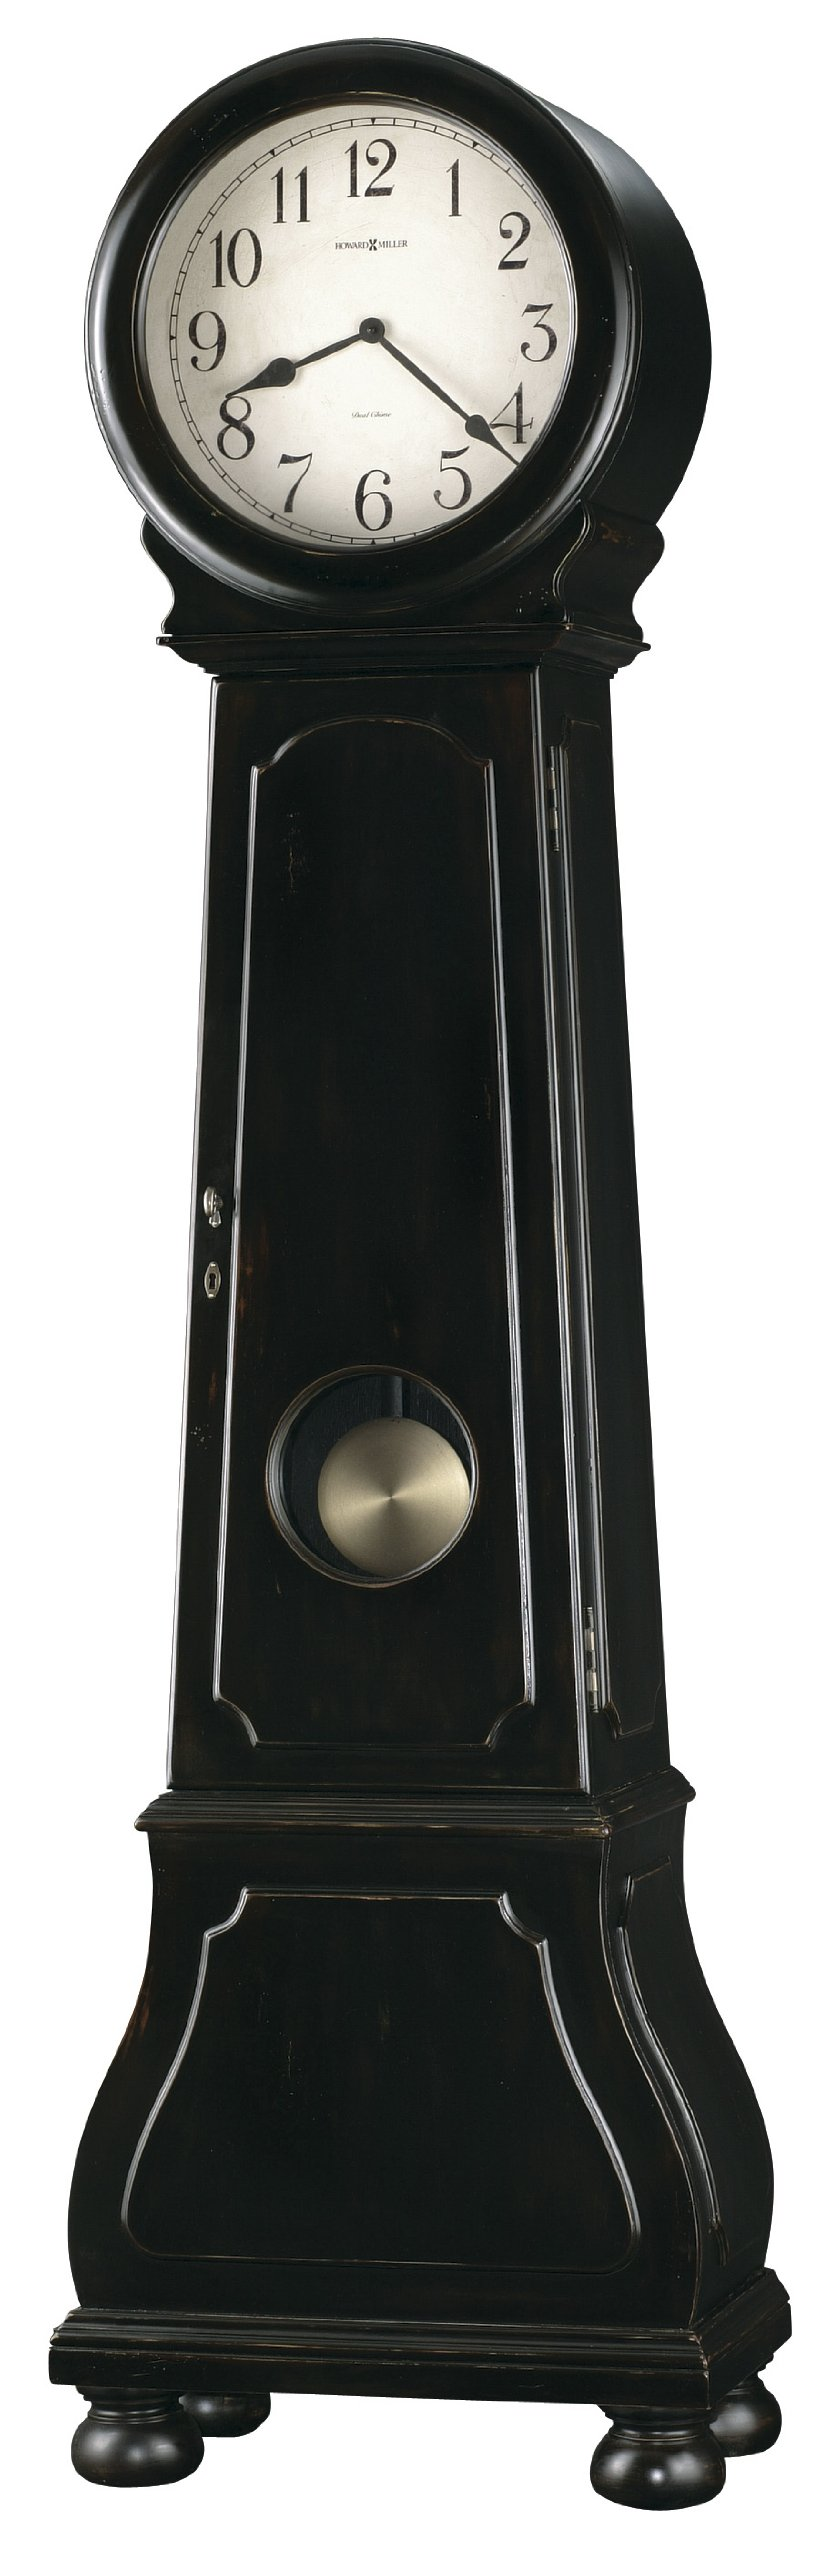 Howard Miller 615-005 Nashua Floor Clock by Howard Miller